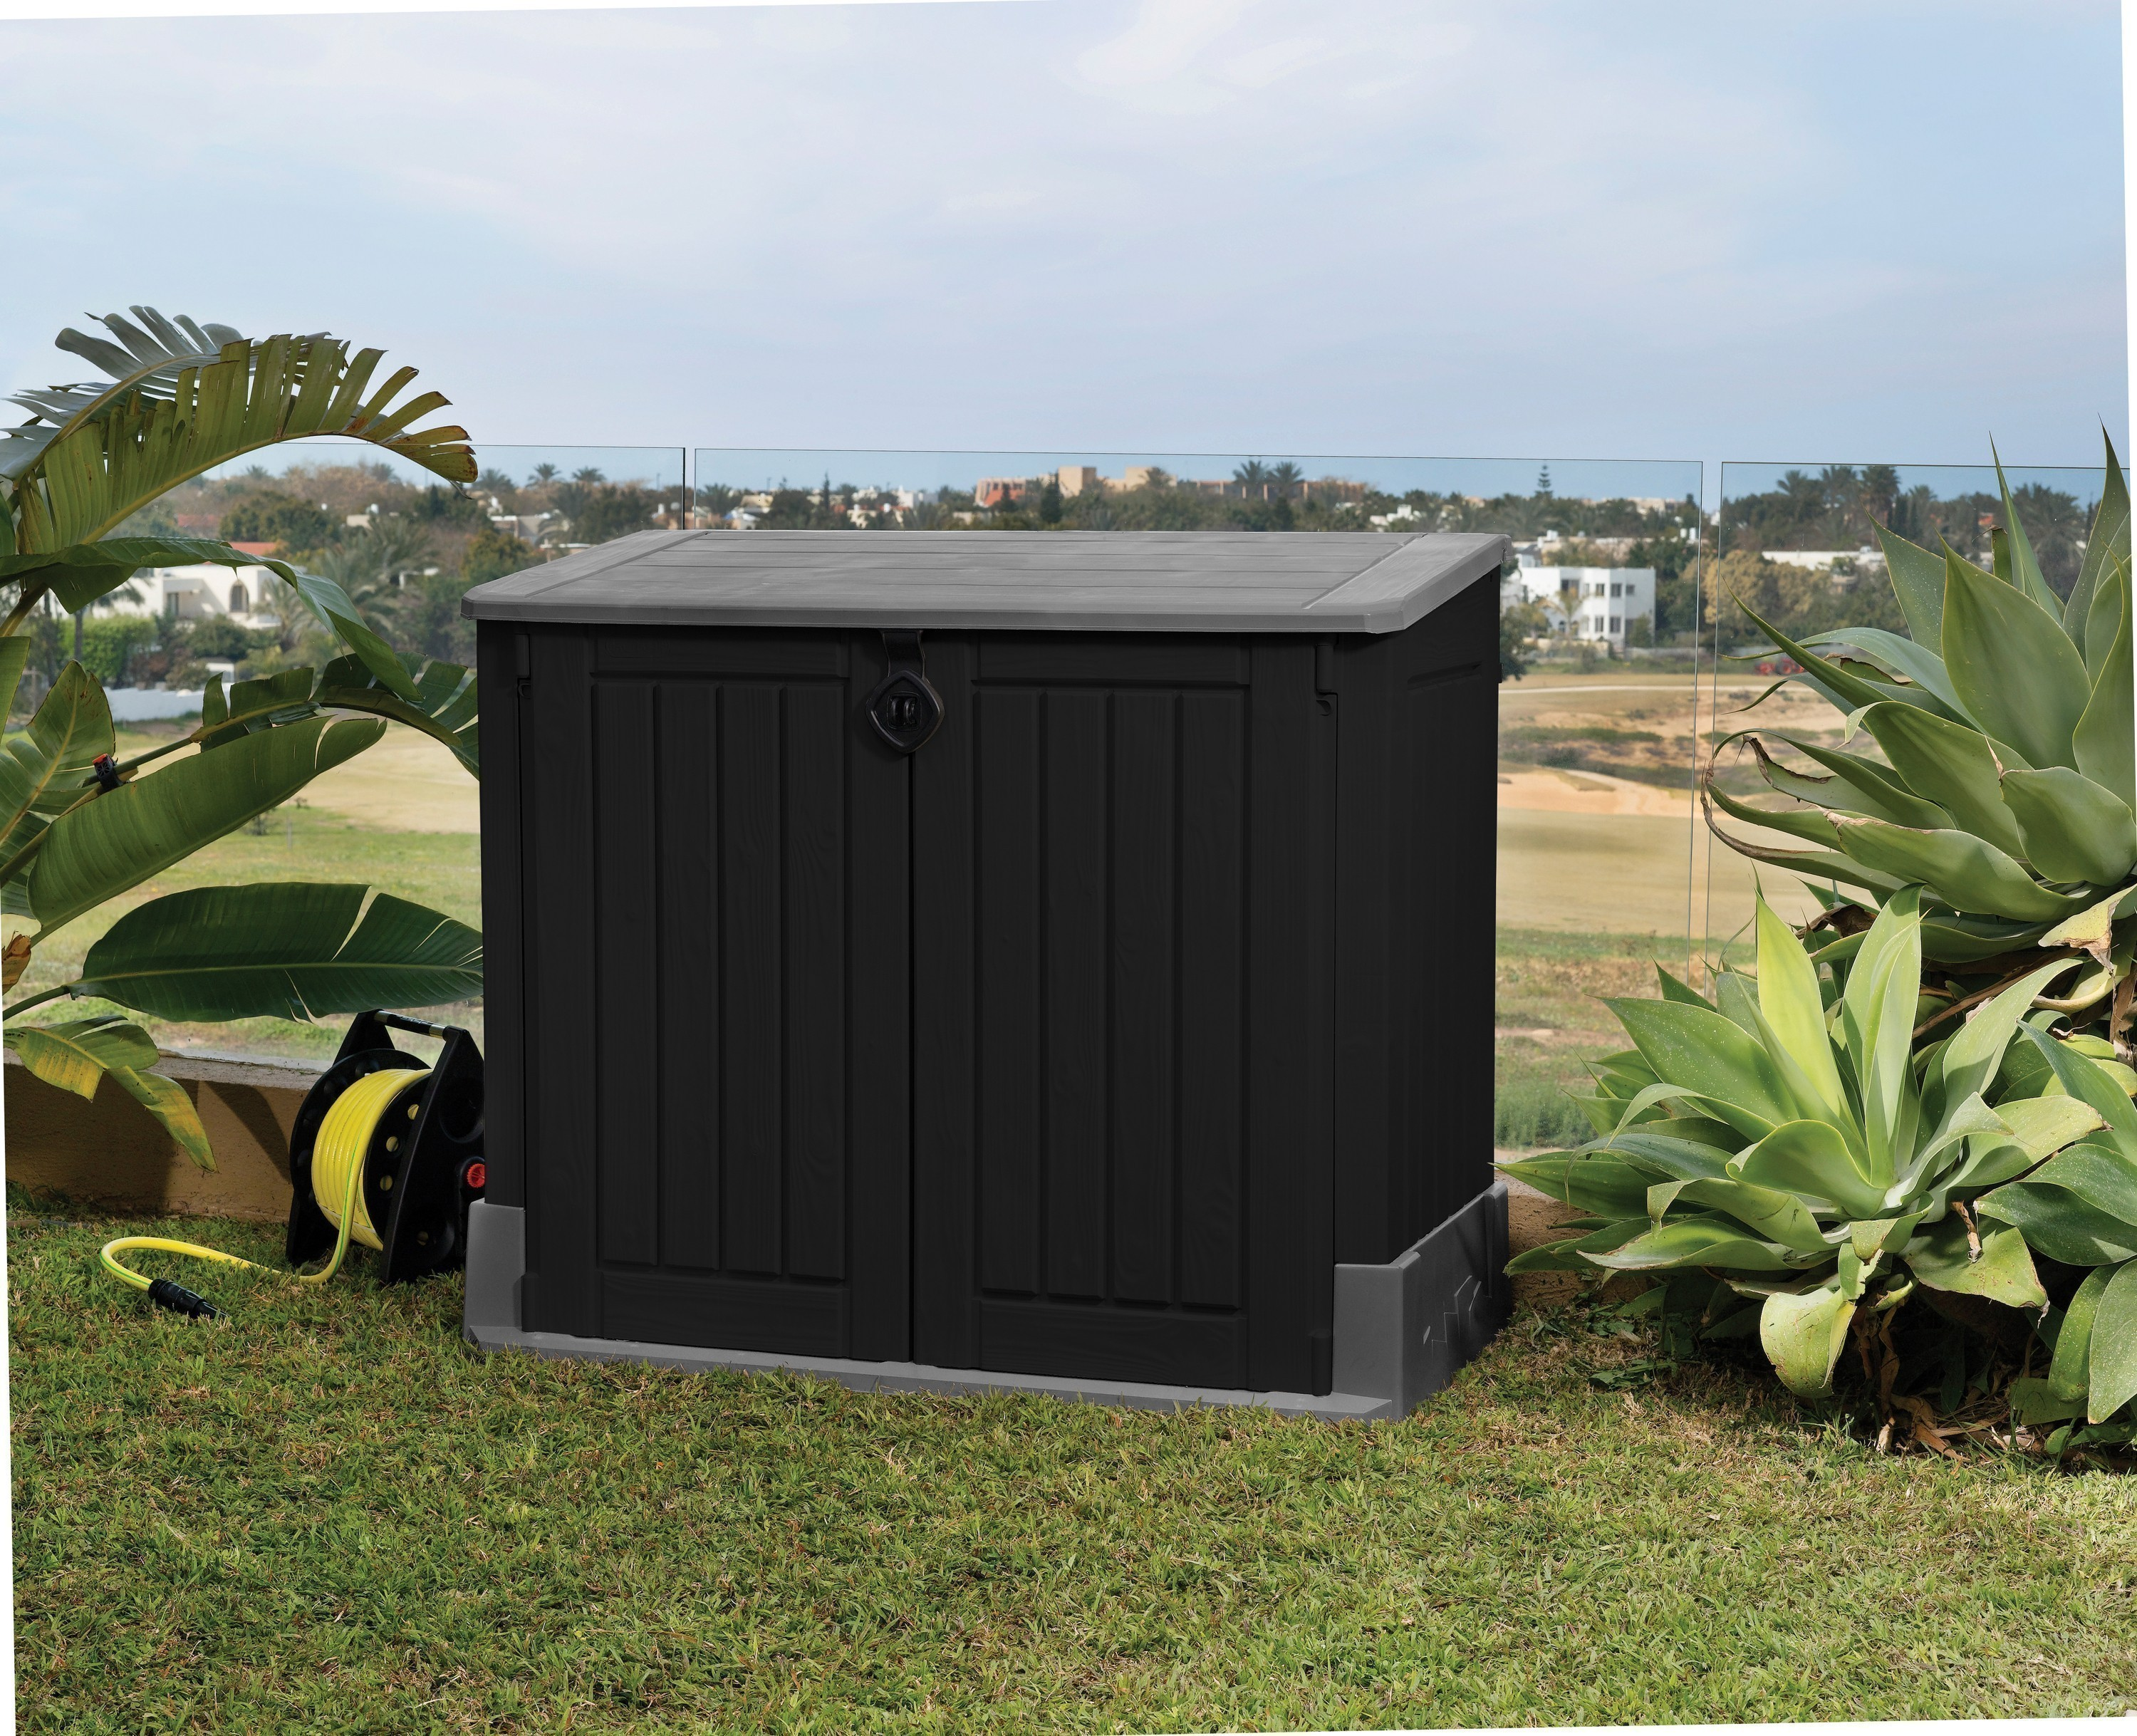 gartenbox aufbewahrungsbox woodland 30 keter 132x74x110 cm schwarz bei. Black Bedroom Furniture Sets. Home Design Ideas